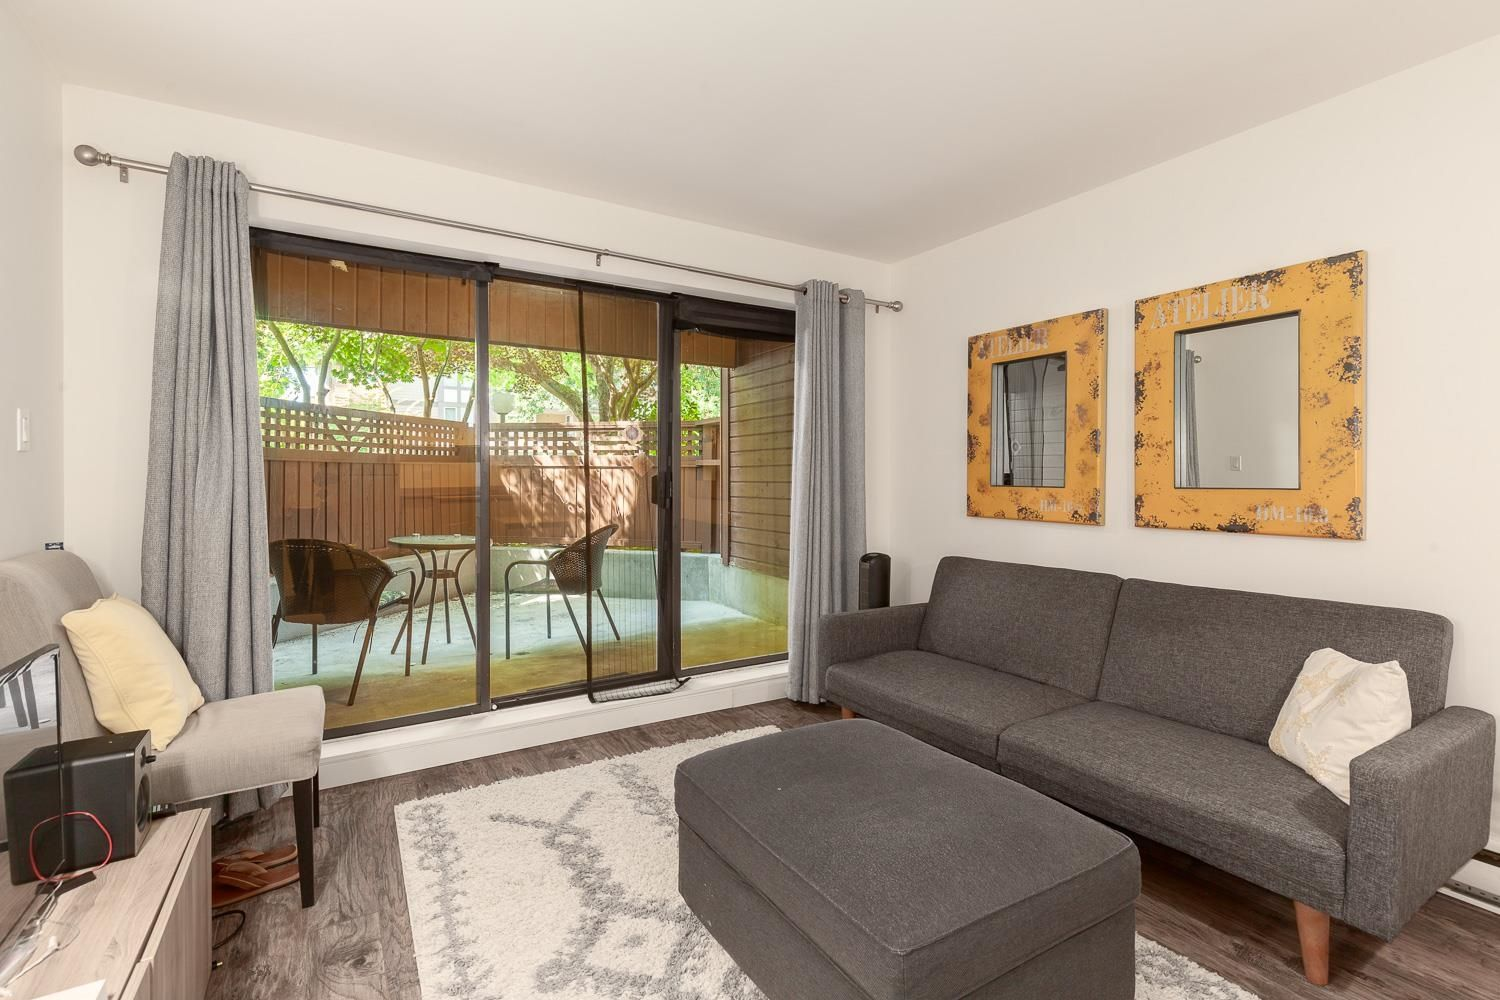 """Main Photo: 101 2920 ASH Street in Vancouver: Fairview VW Condo for sale in """"Ash Court"""" (Vancouver West)  : MLS®# R2615641"""